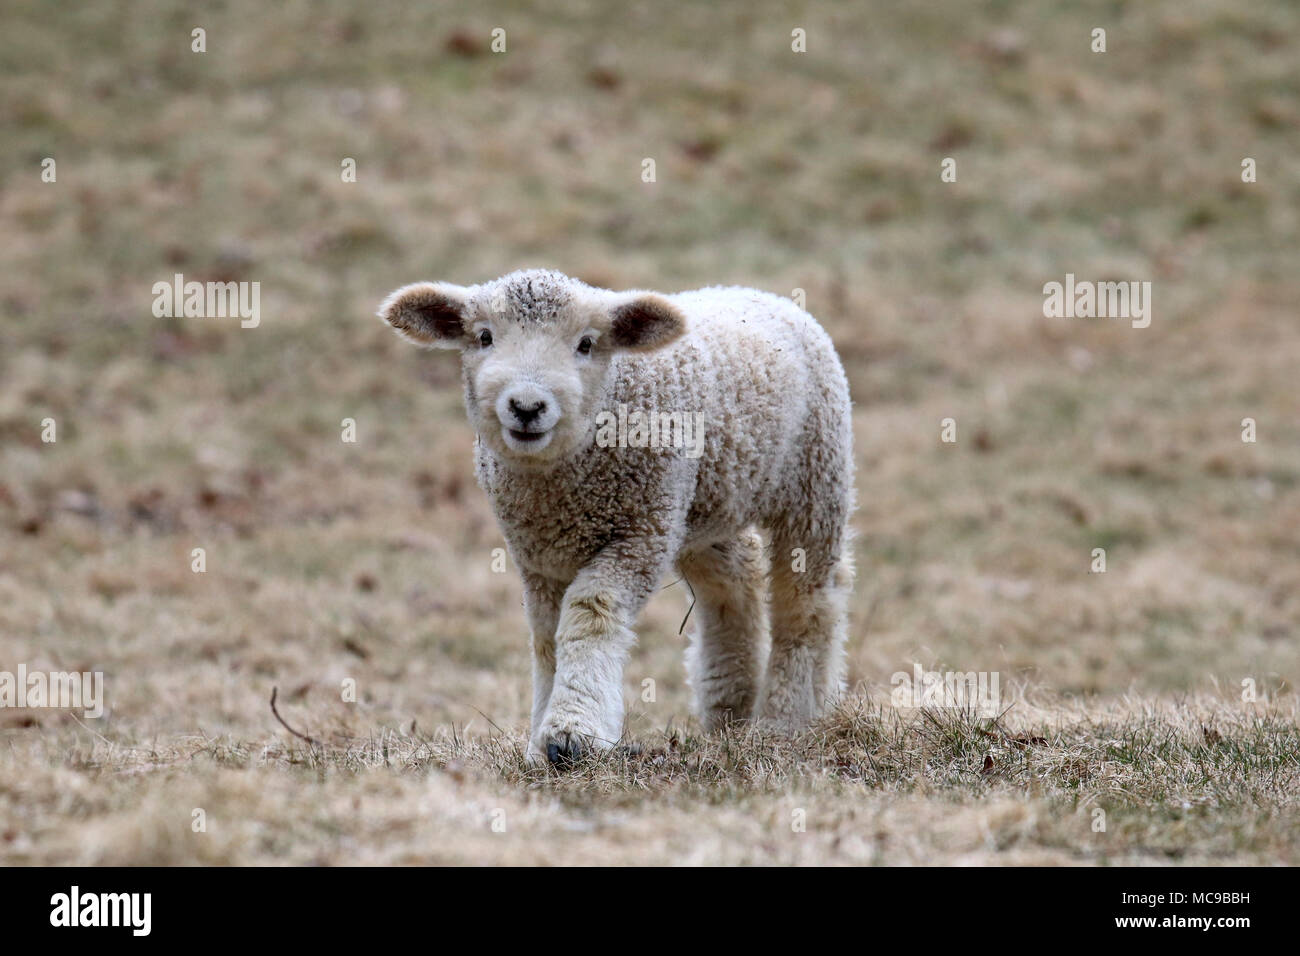 A white woolly lamb walking in a field in Springtime - Stock Image